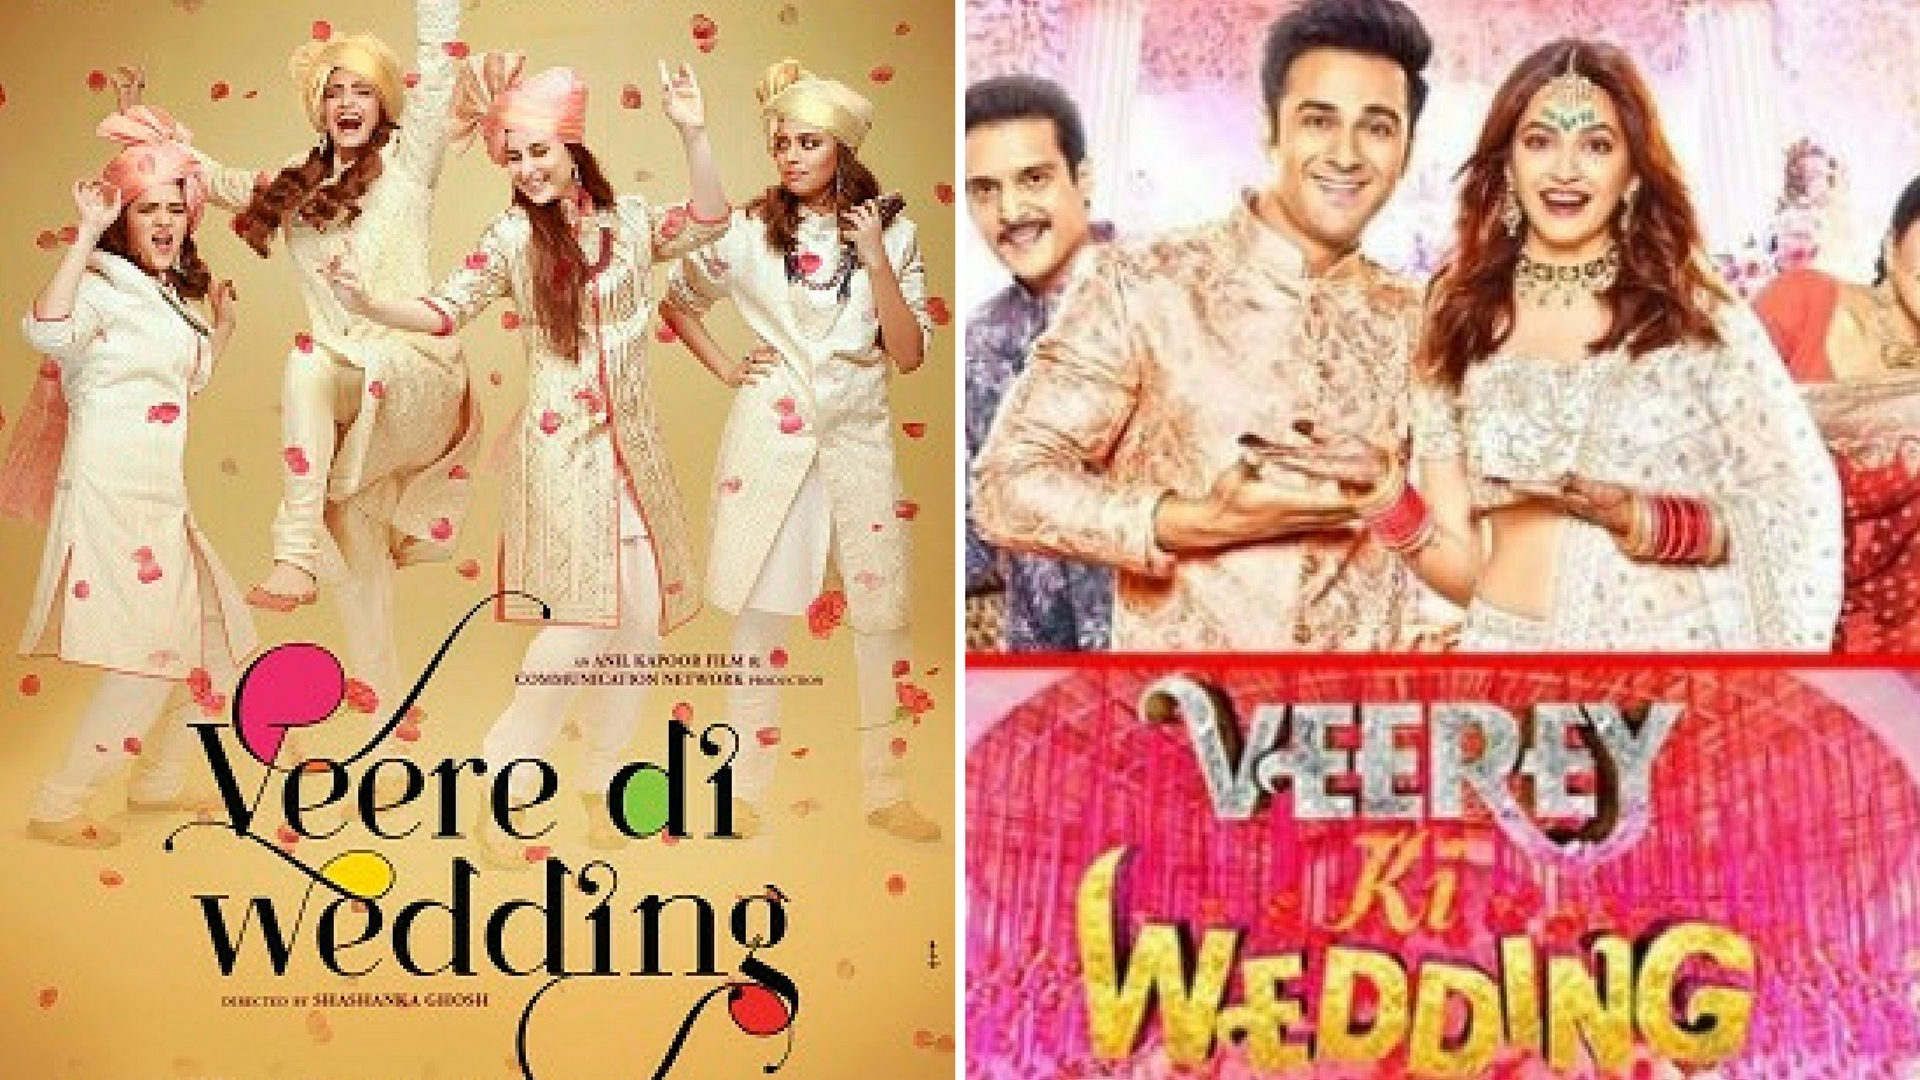 Veerey Ki Wedding.Veerey Ki Wedding To Release Despite Title Clash With Sonam S Film